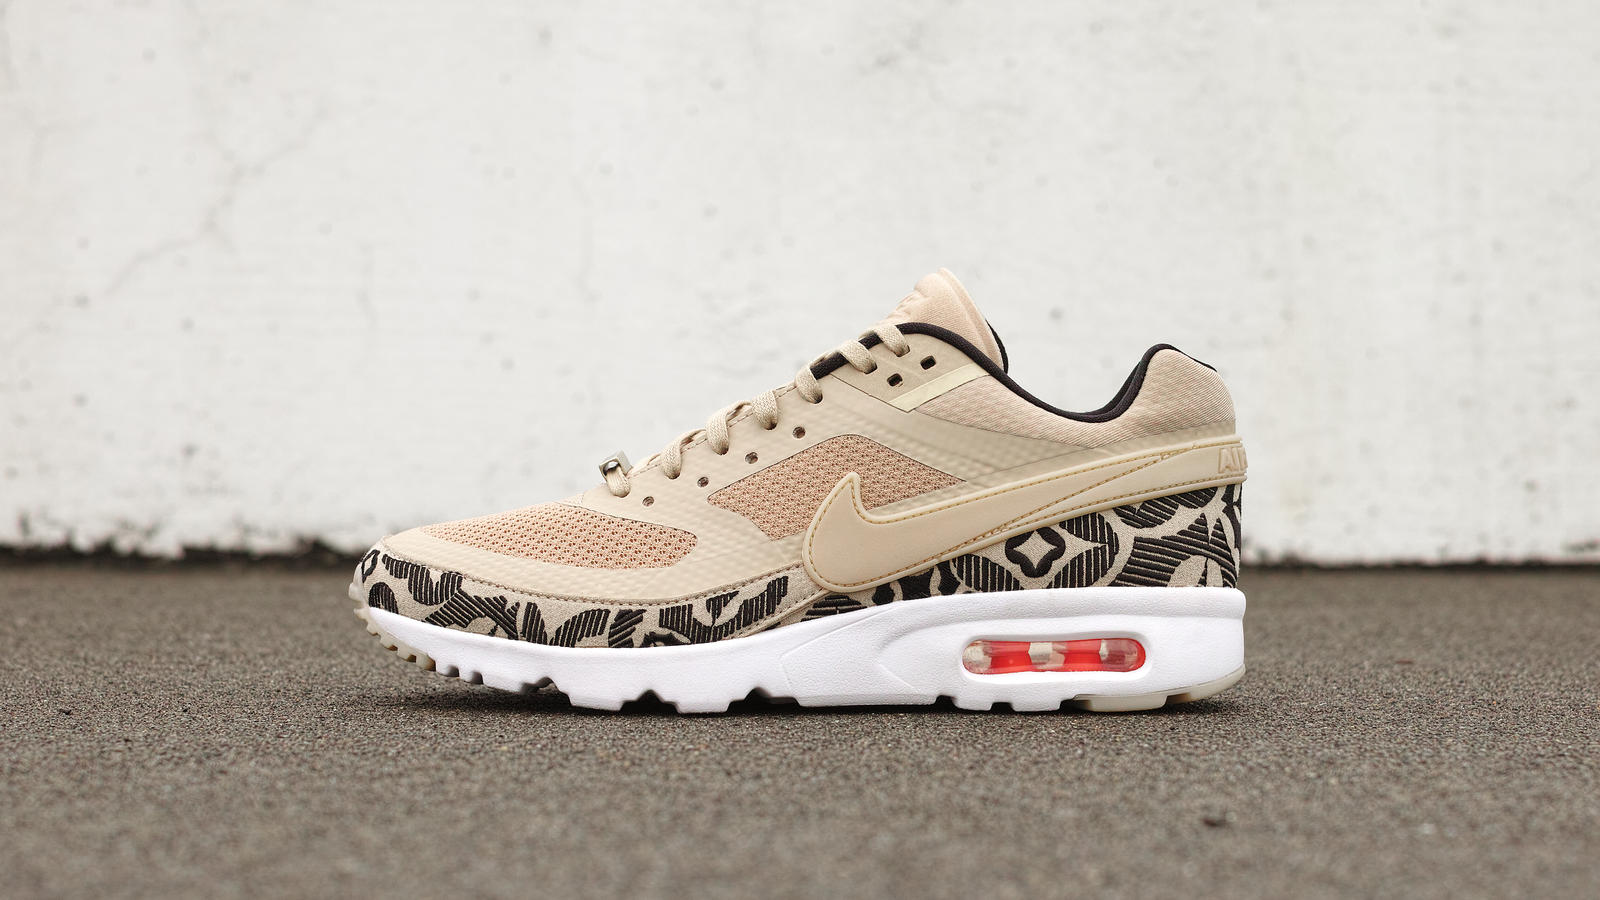 nike air max 1 ultra city kollektion wiedemann